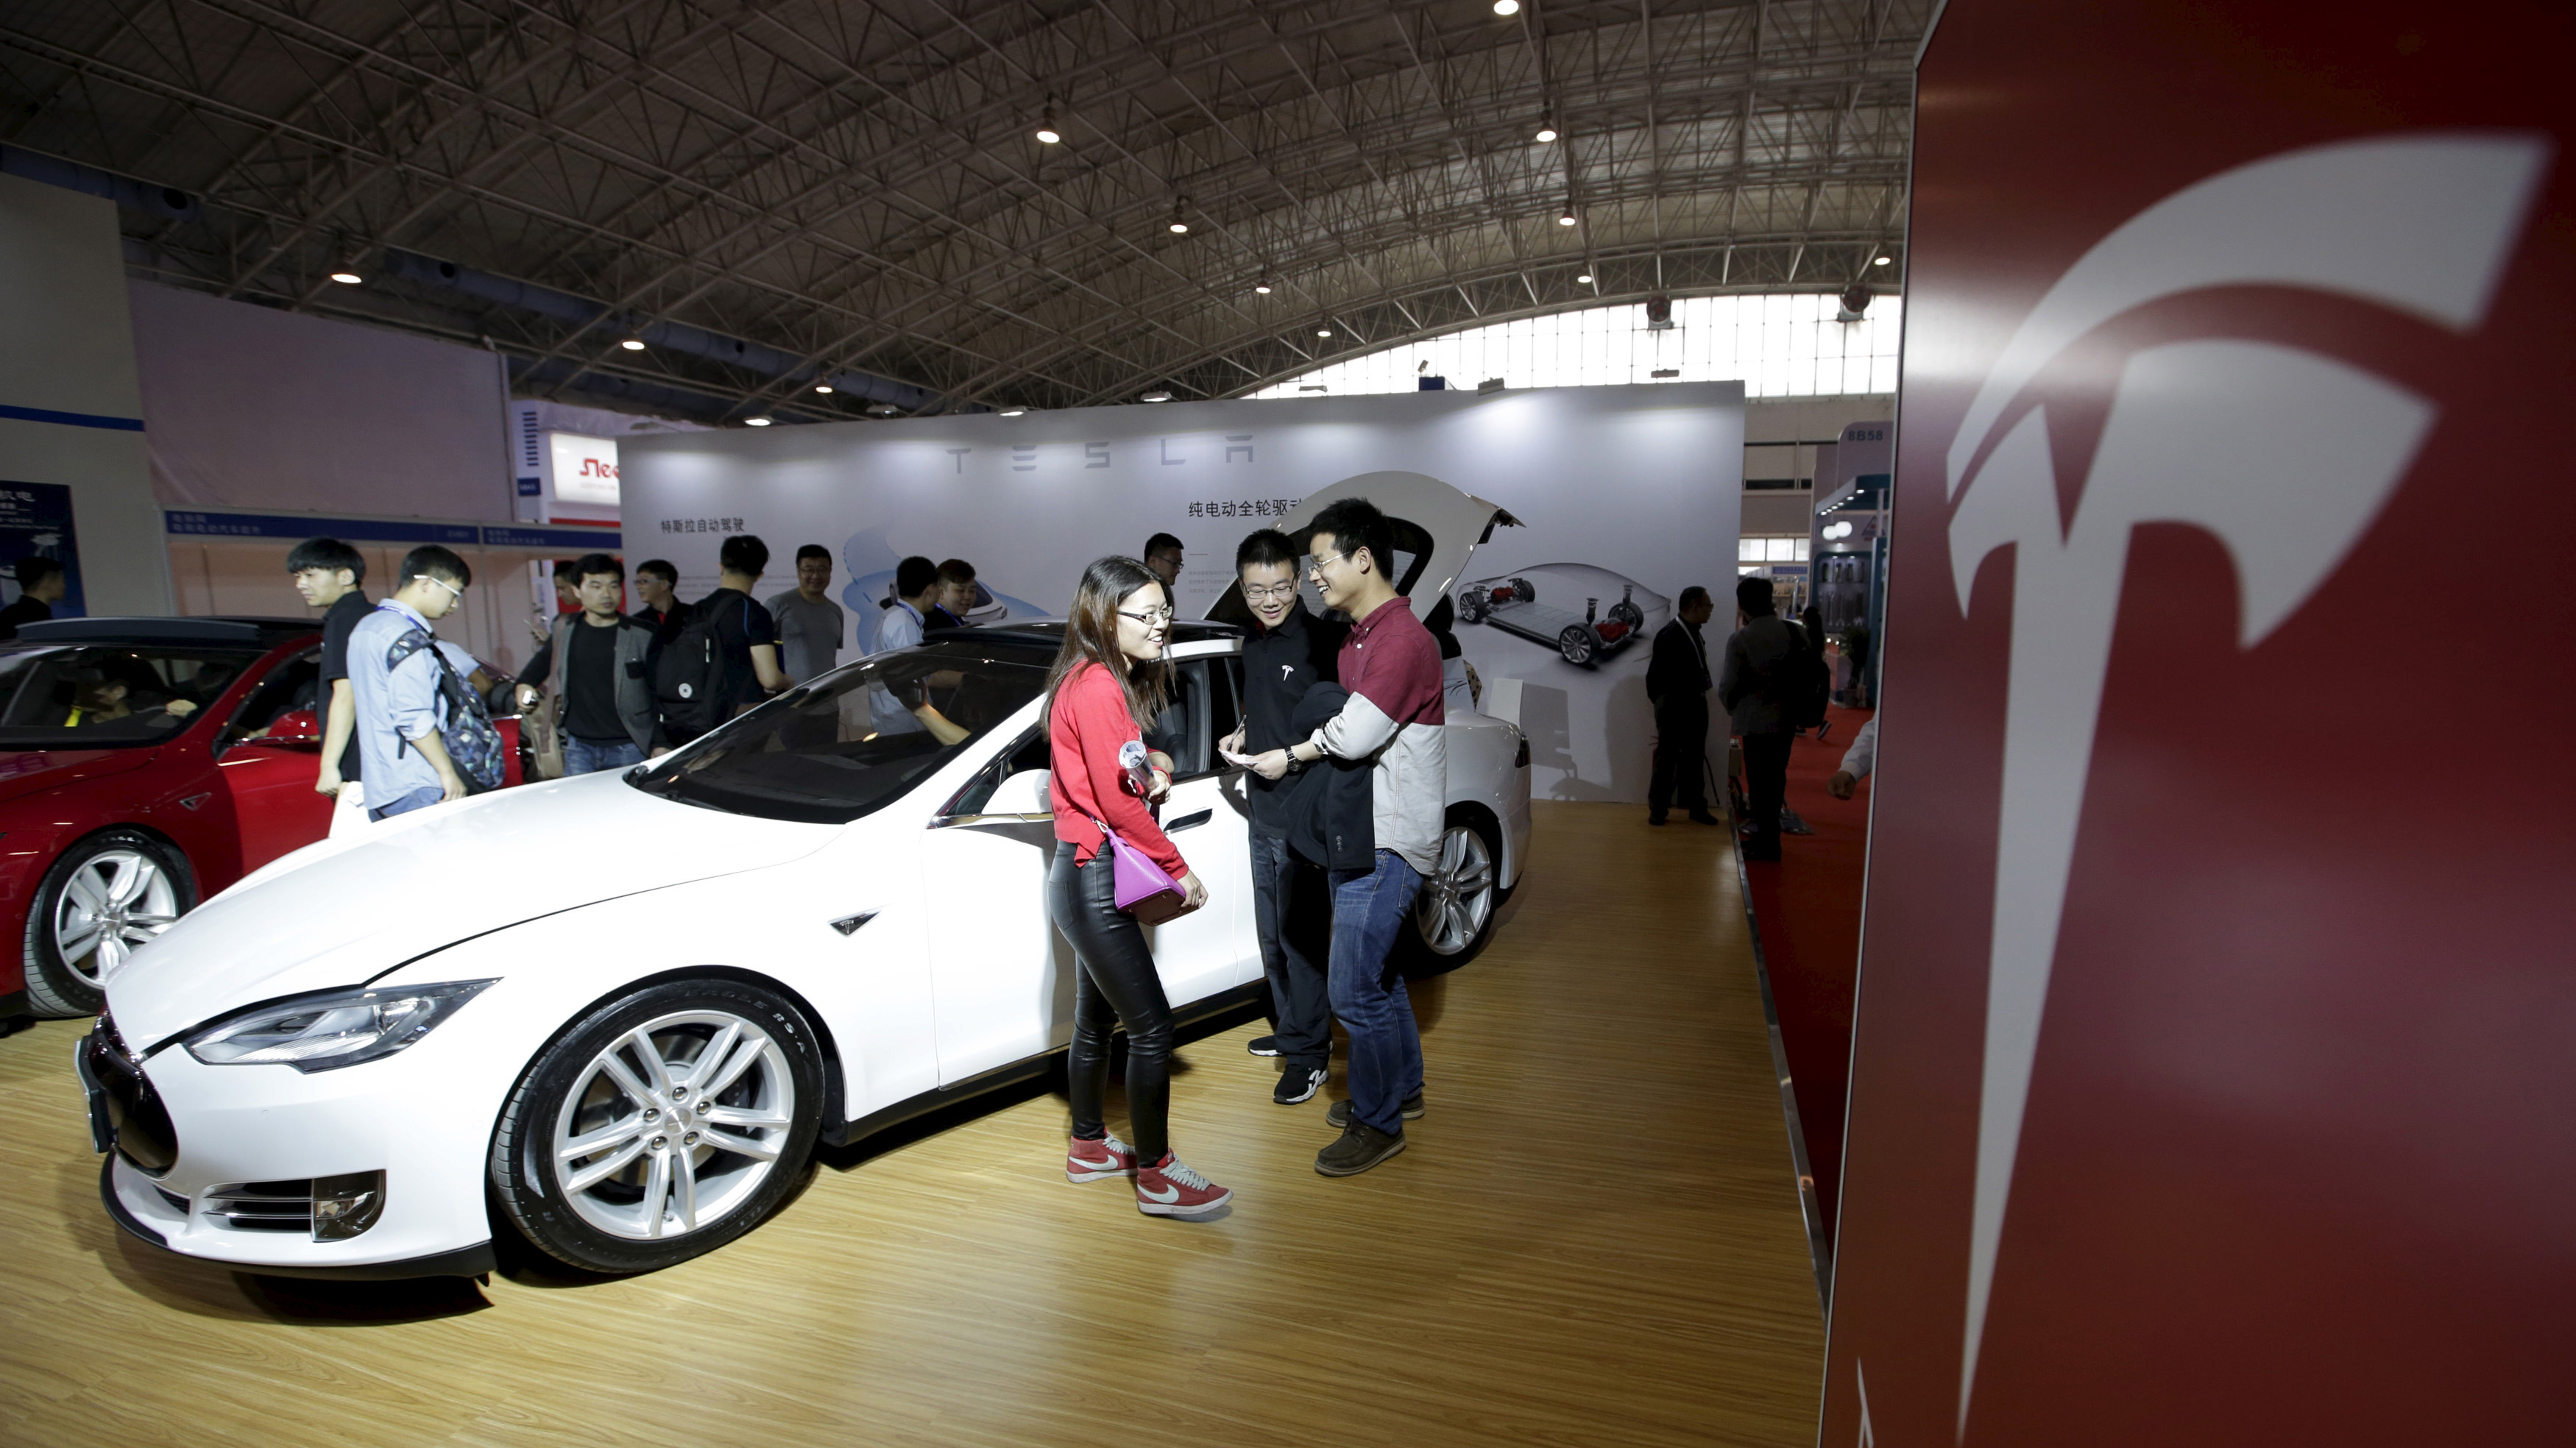 Visitors stand next to a Tesla Model S car during the Auto China 2016 in Beijing